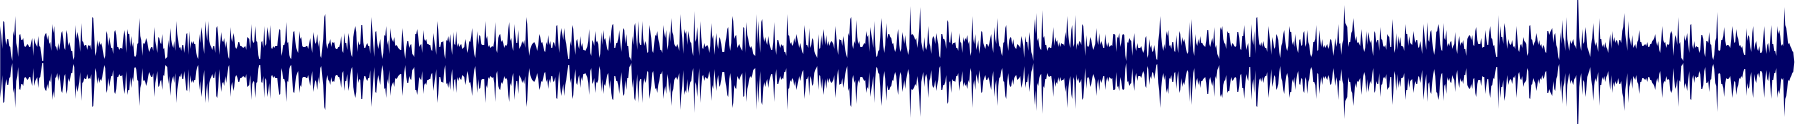 waveform of track #74300